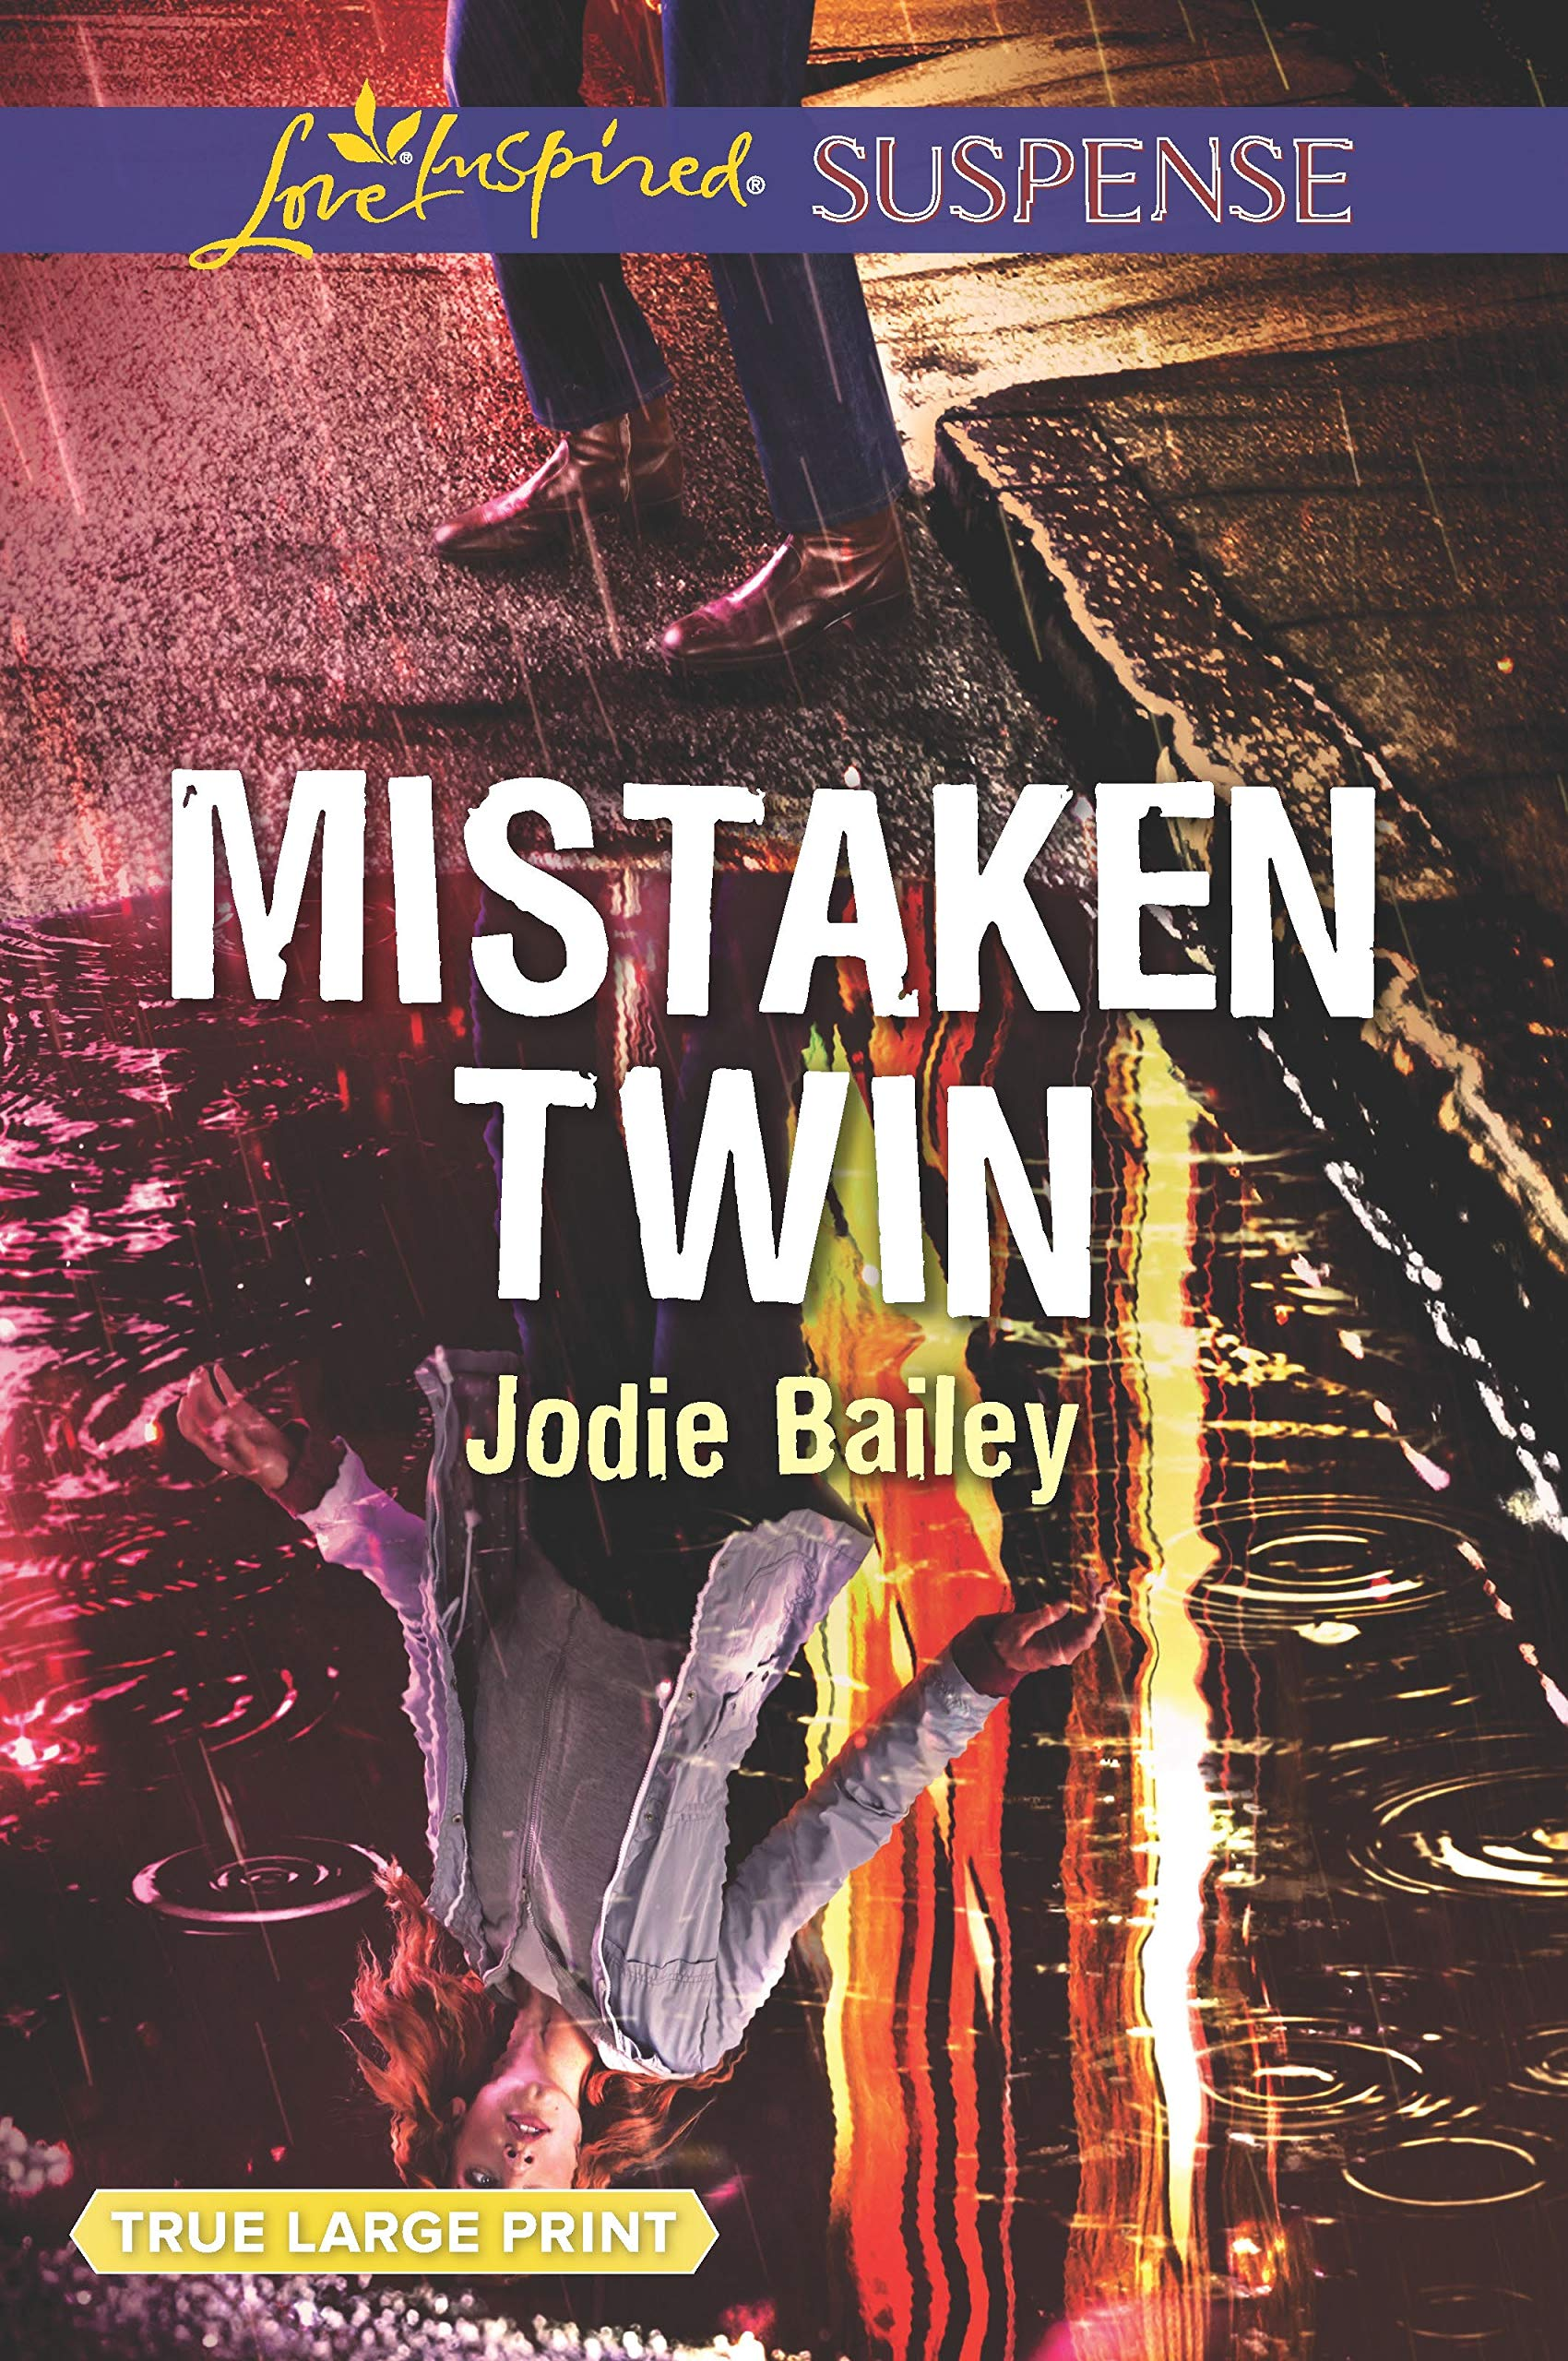 Image result for mistaken twin by jodie bailey